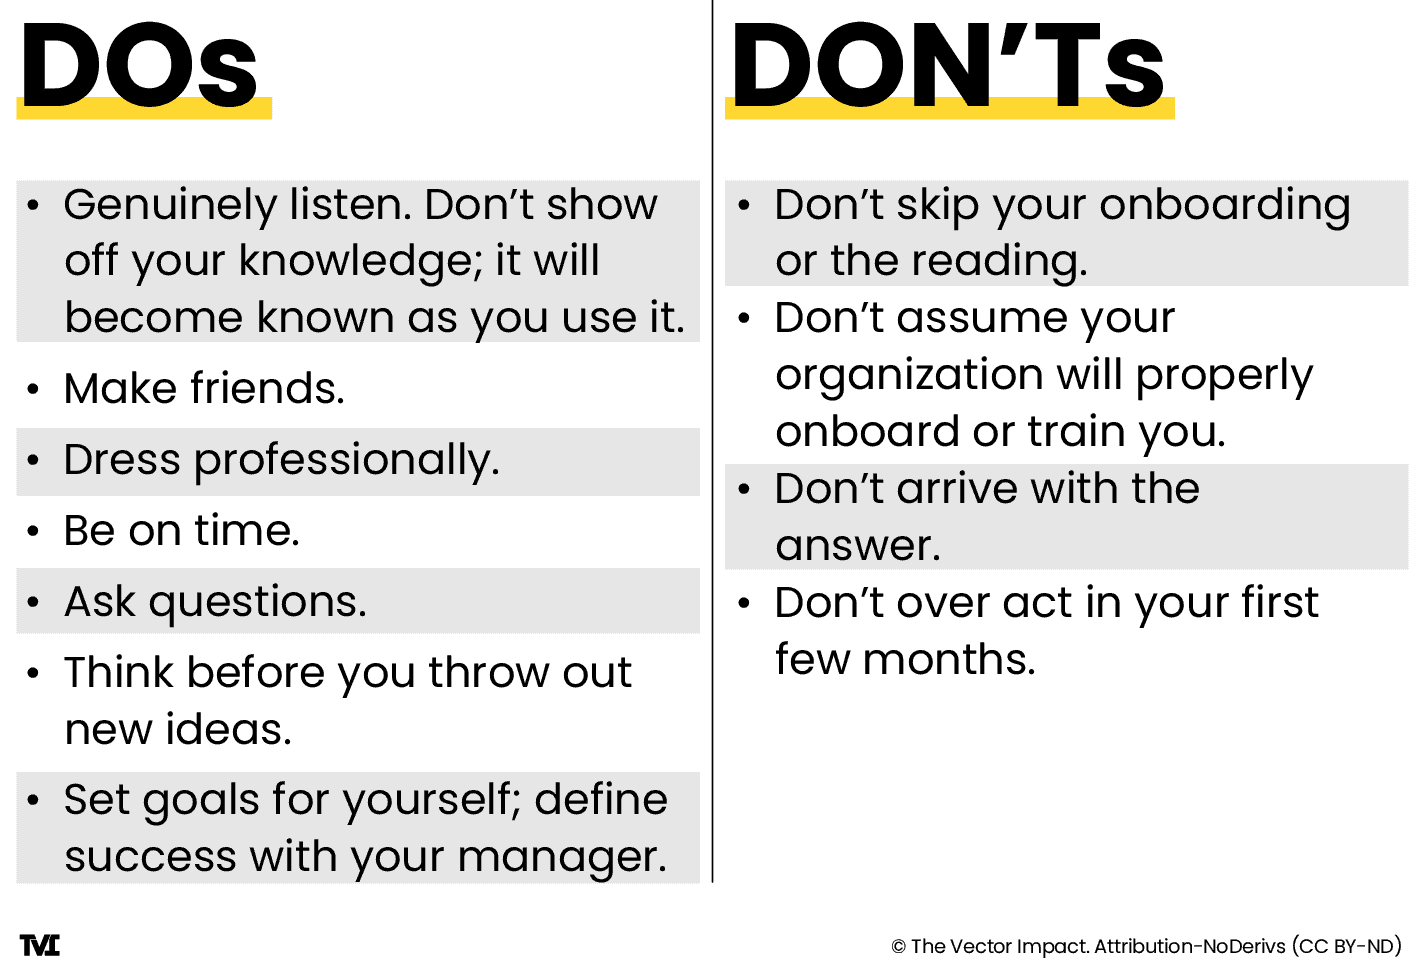 chart of dos and don'ts for starting a new job